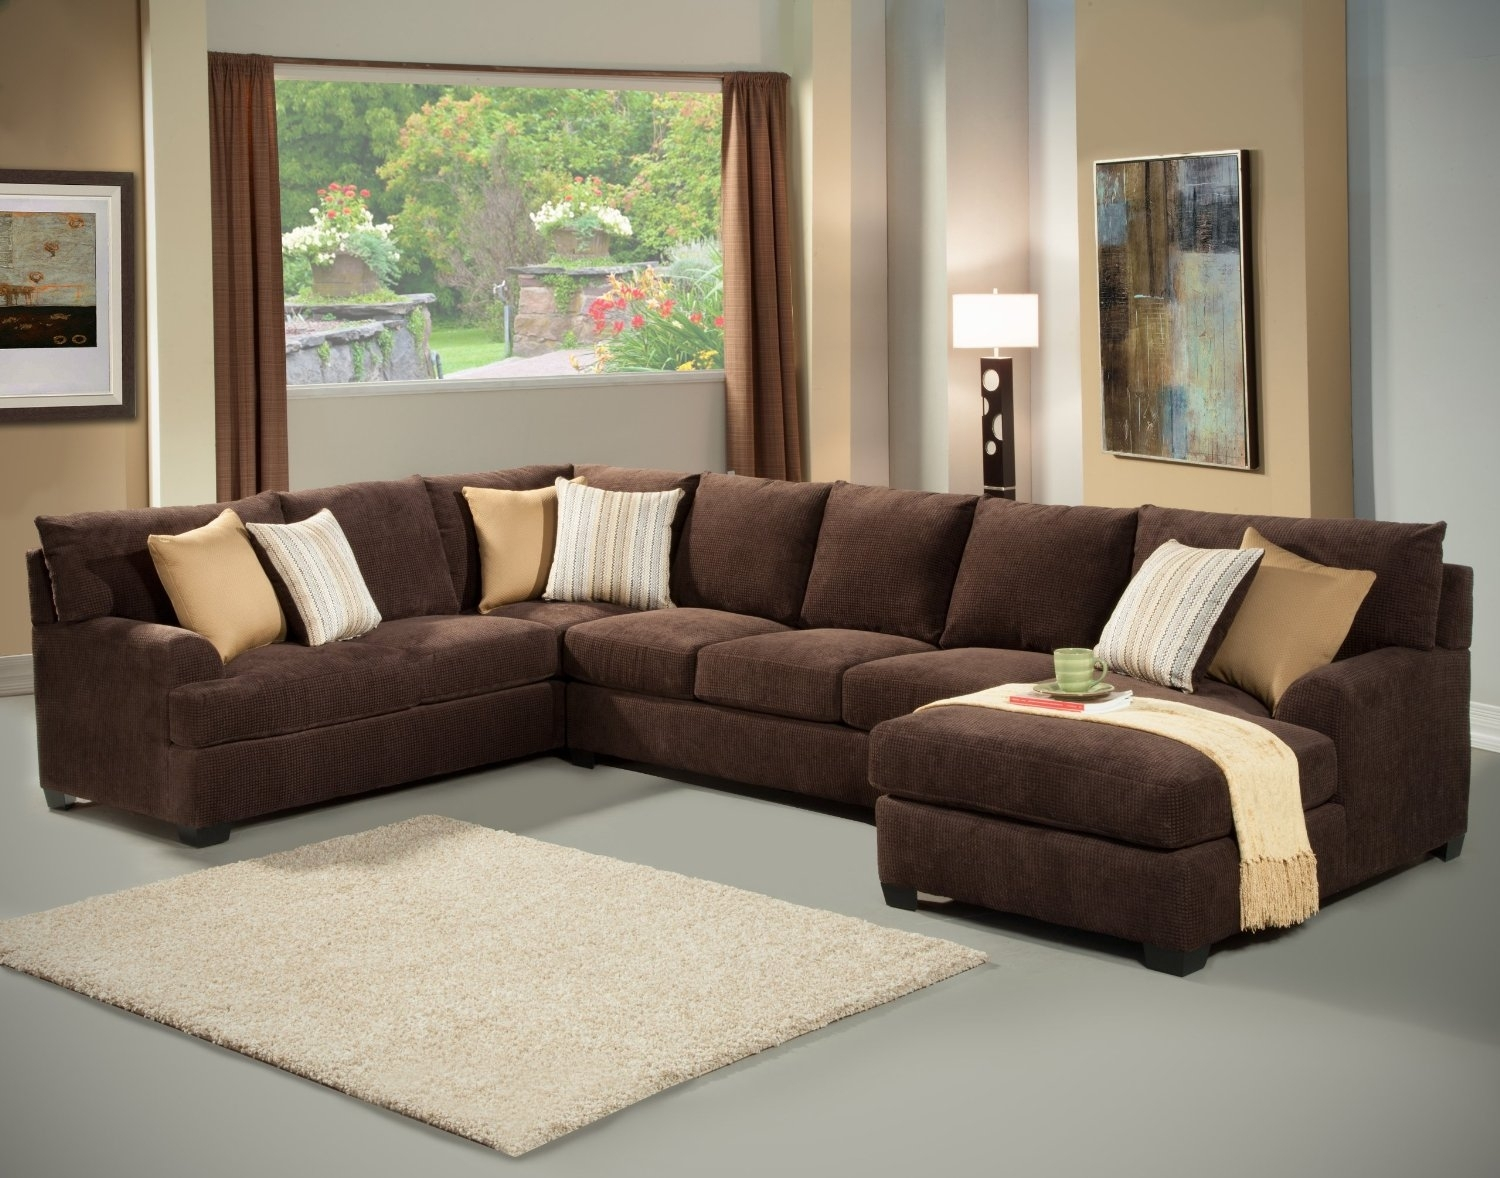 Cheap Sectional Sofas Houston Tx 55 With Cheap Sectional Sofas With Regard To Sectional Sofas In Houston Tx (Image 2 of 10)